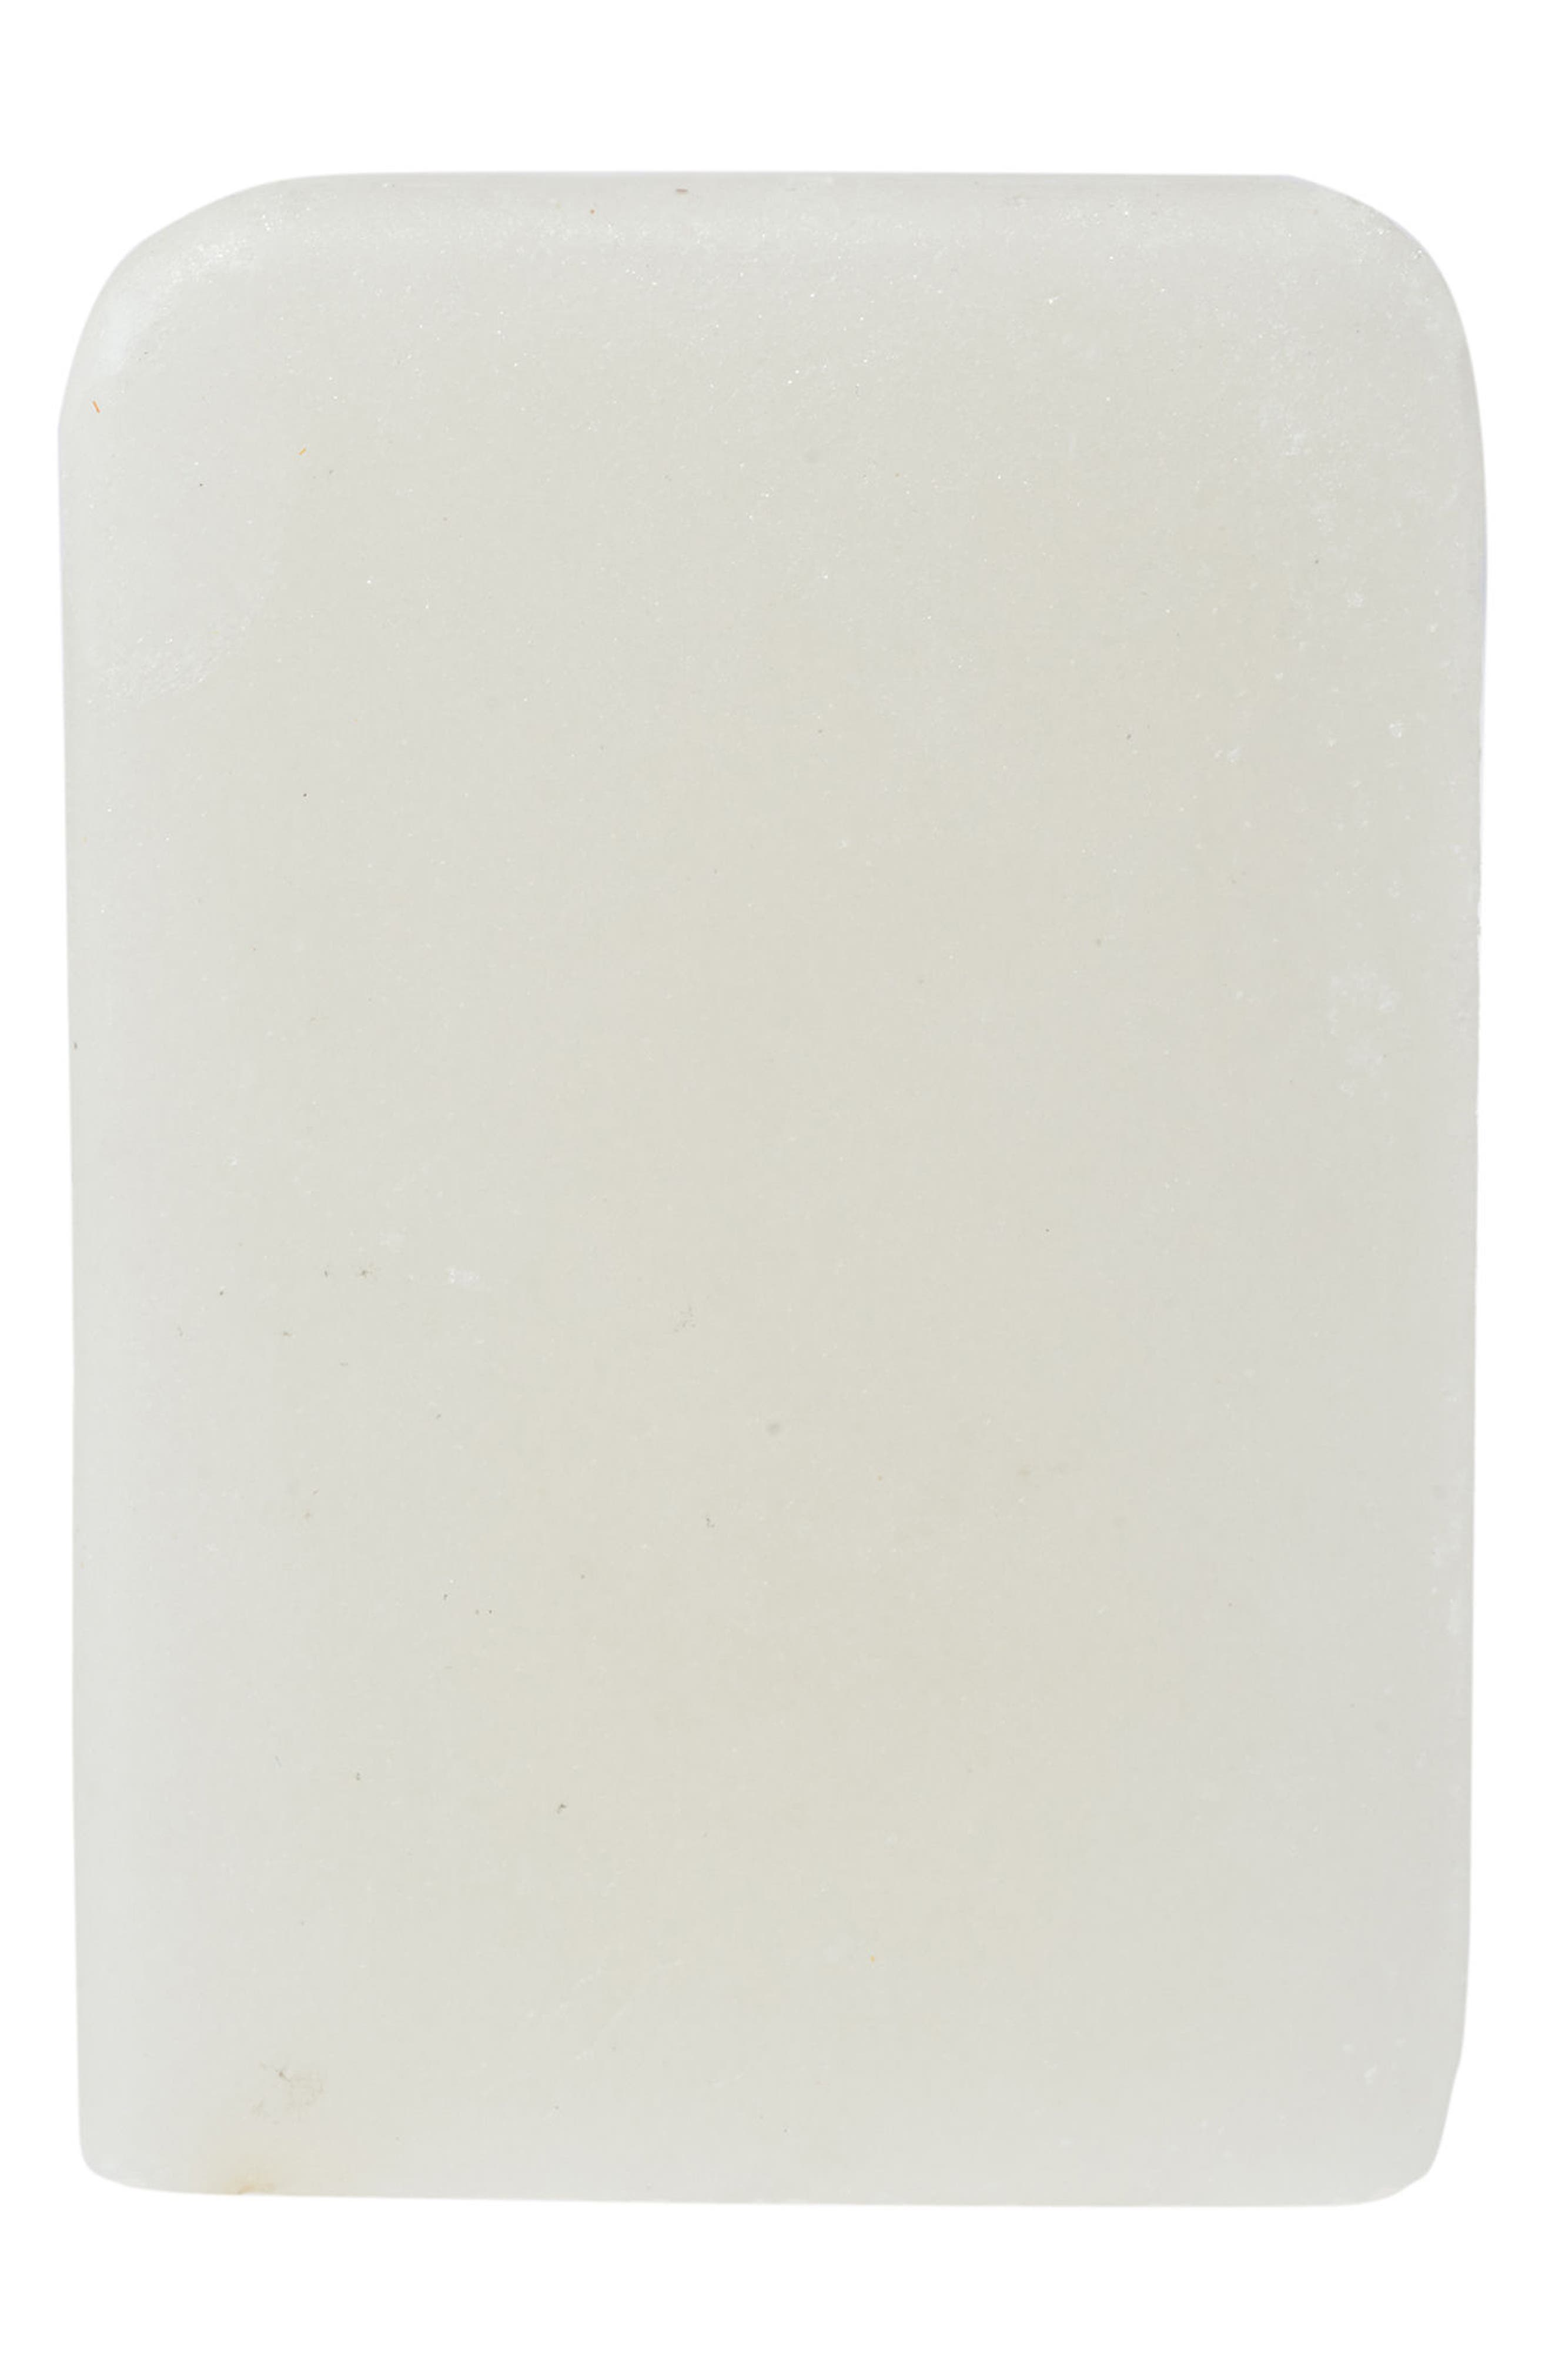 Men's Grooming Post-Shave Alum Stone,                         Main,                         color, 000